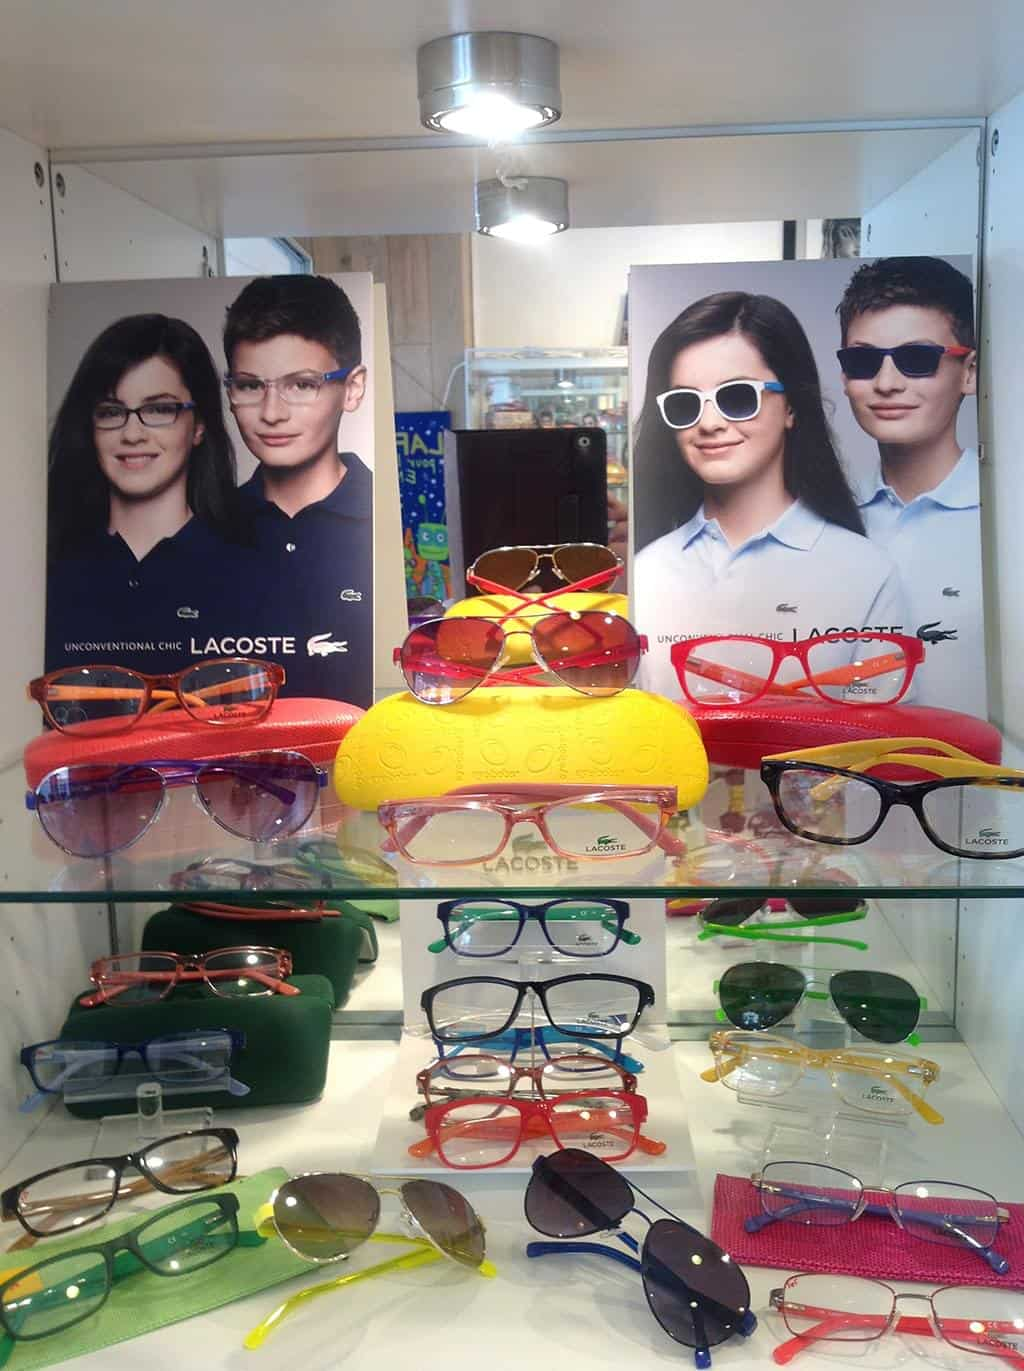 371334094e71 Lacoste Glasses - The Children s Eyeglass Store